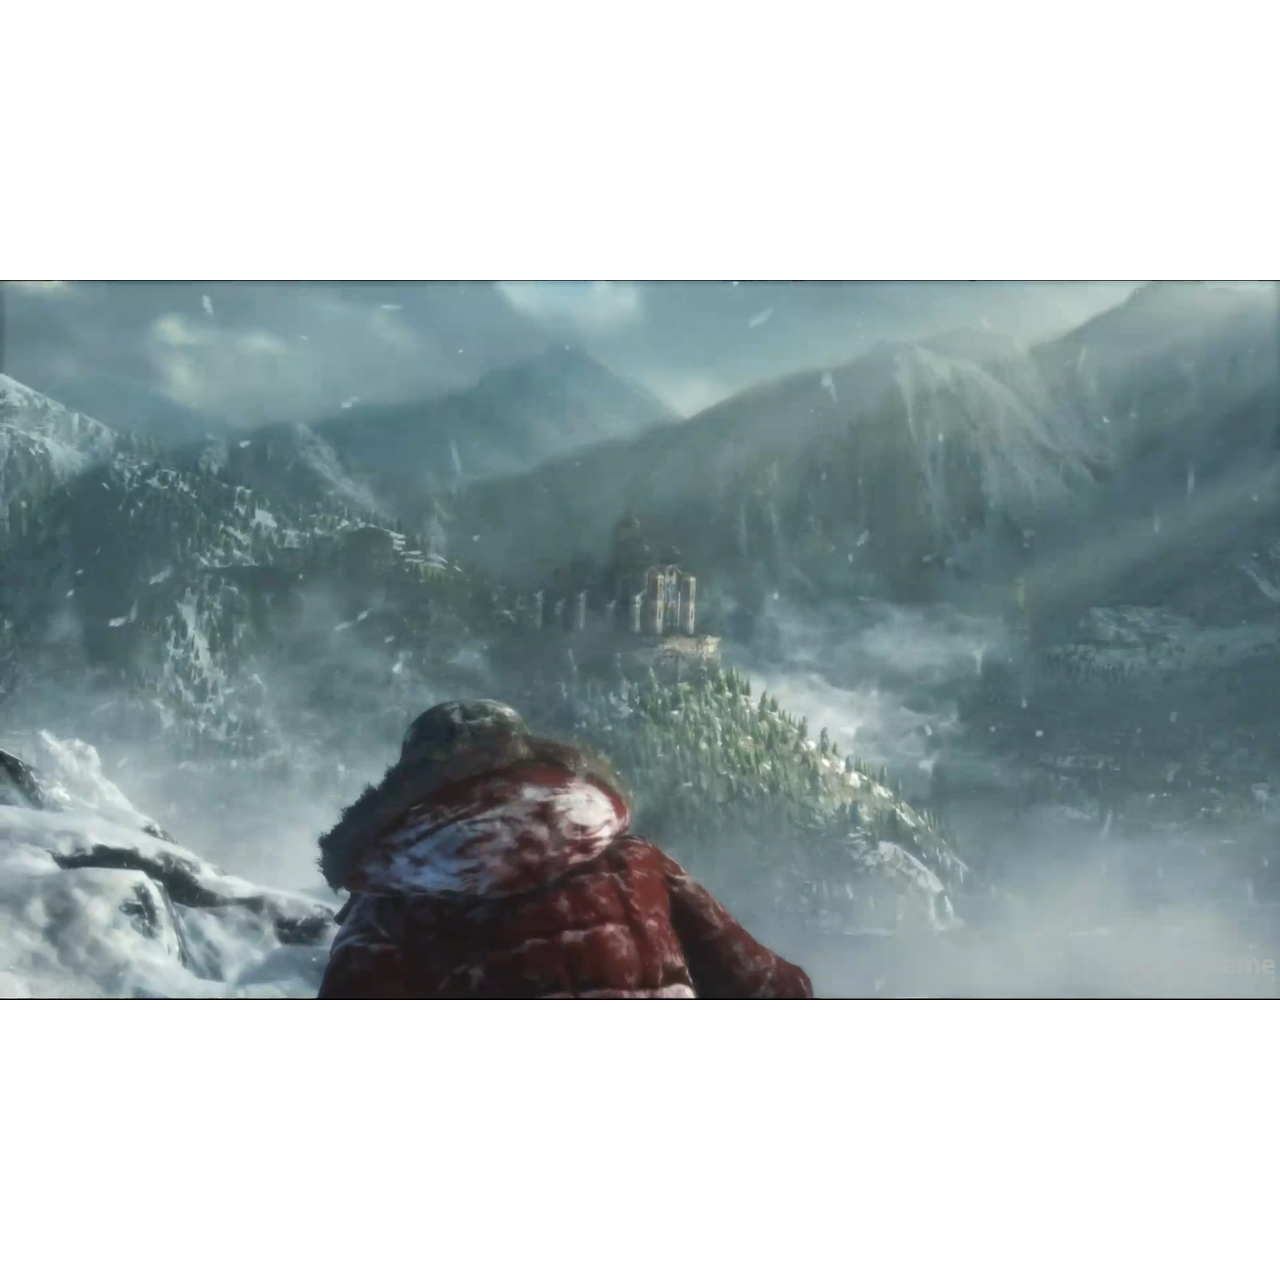 rise-of-the-tomb-raider-xbox-one-jatekszoftver_06b99206.jpg